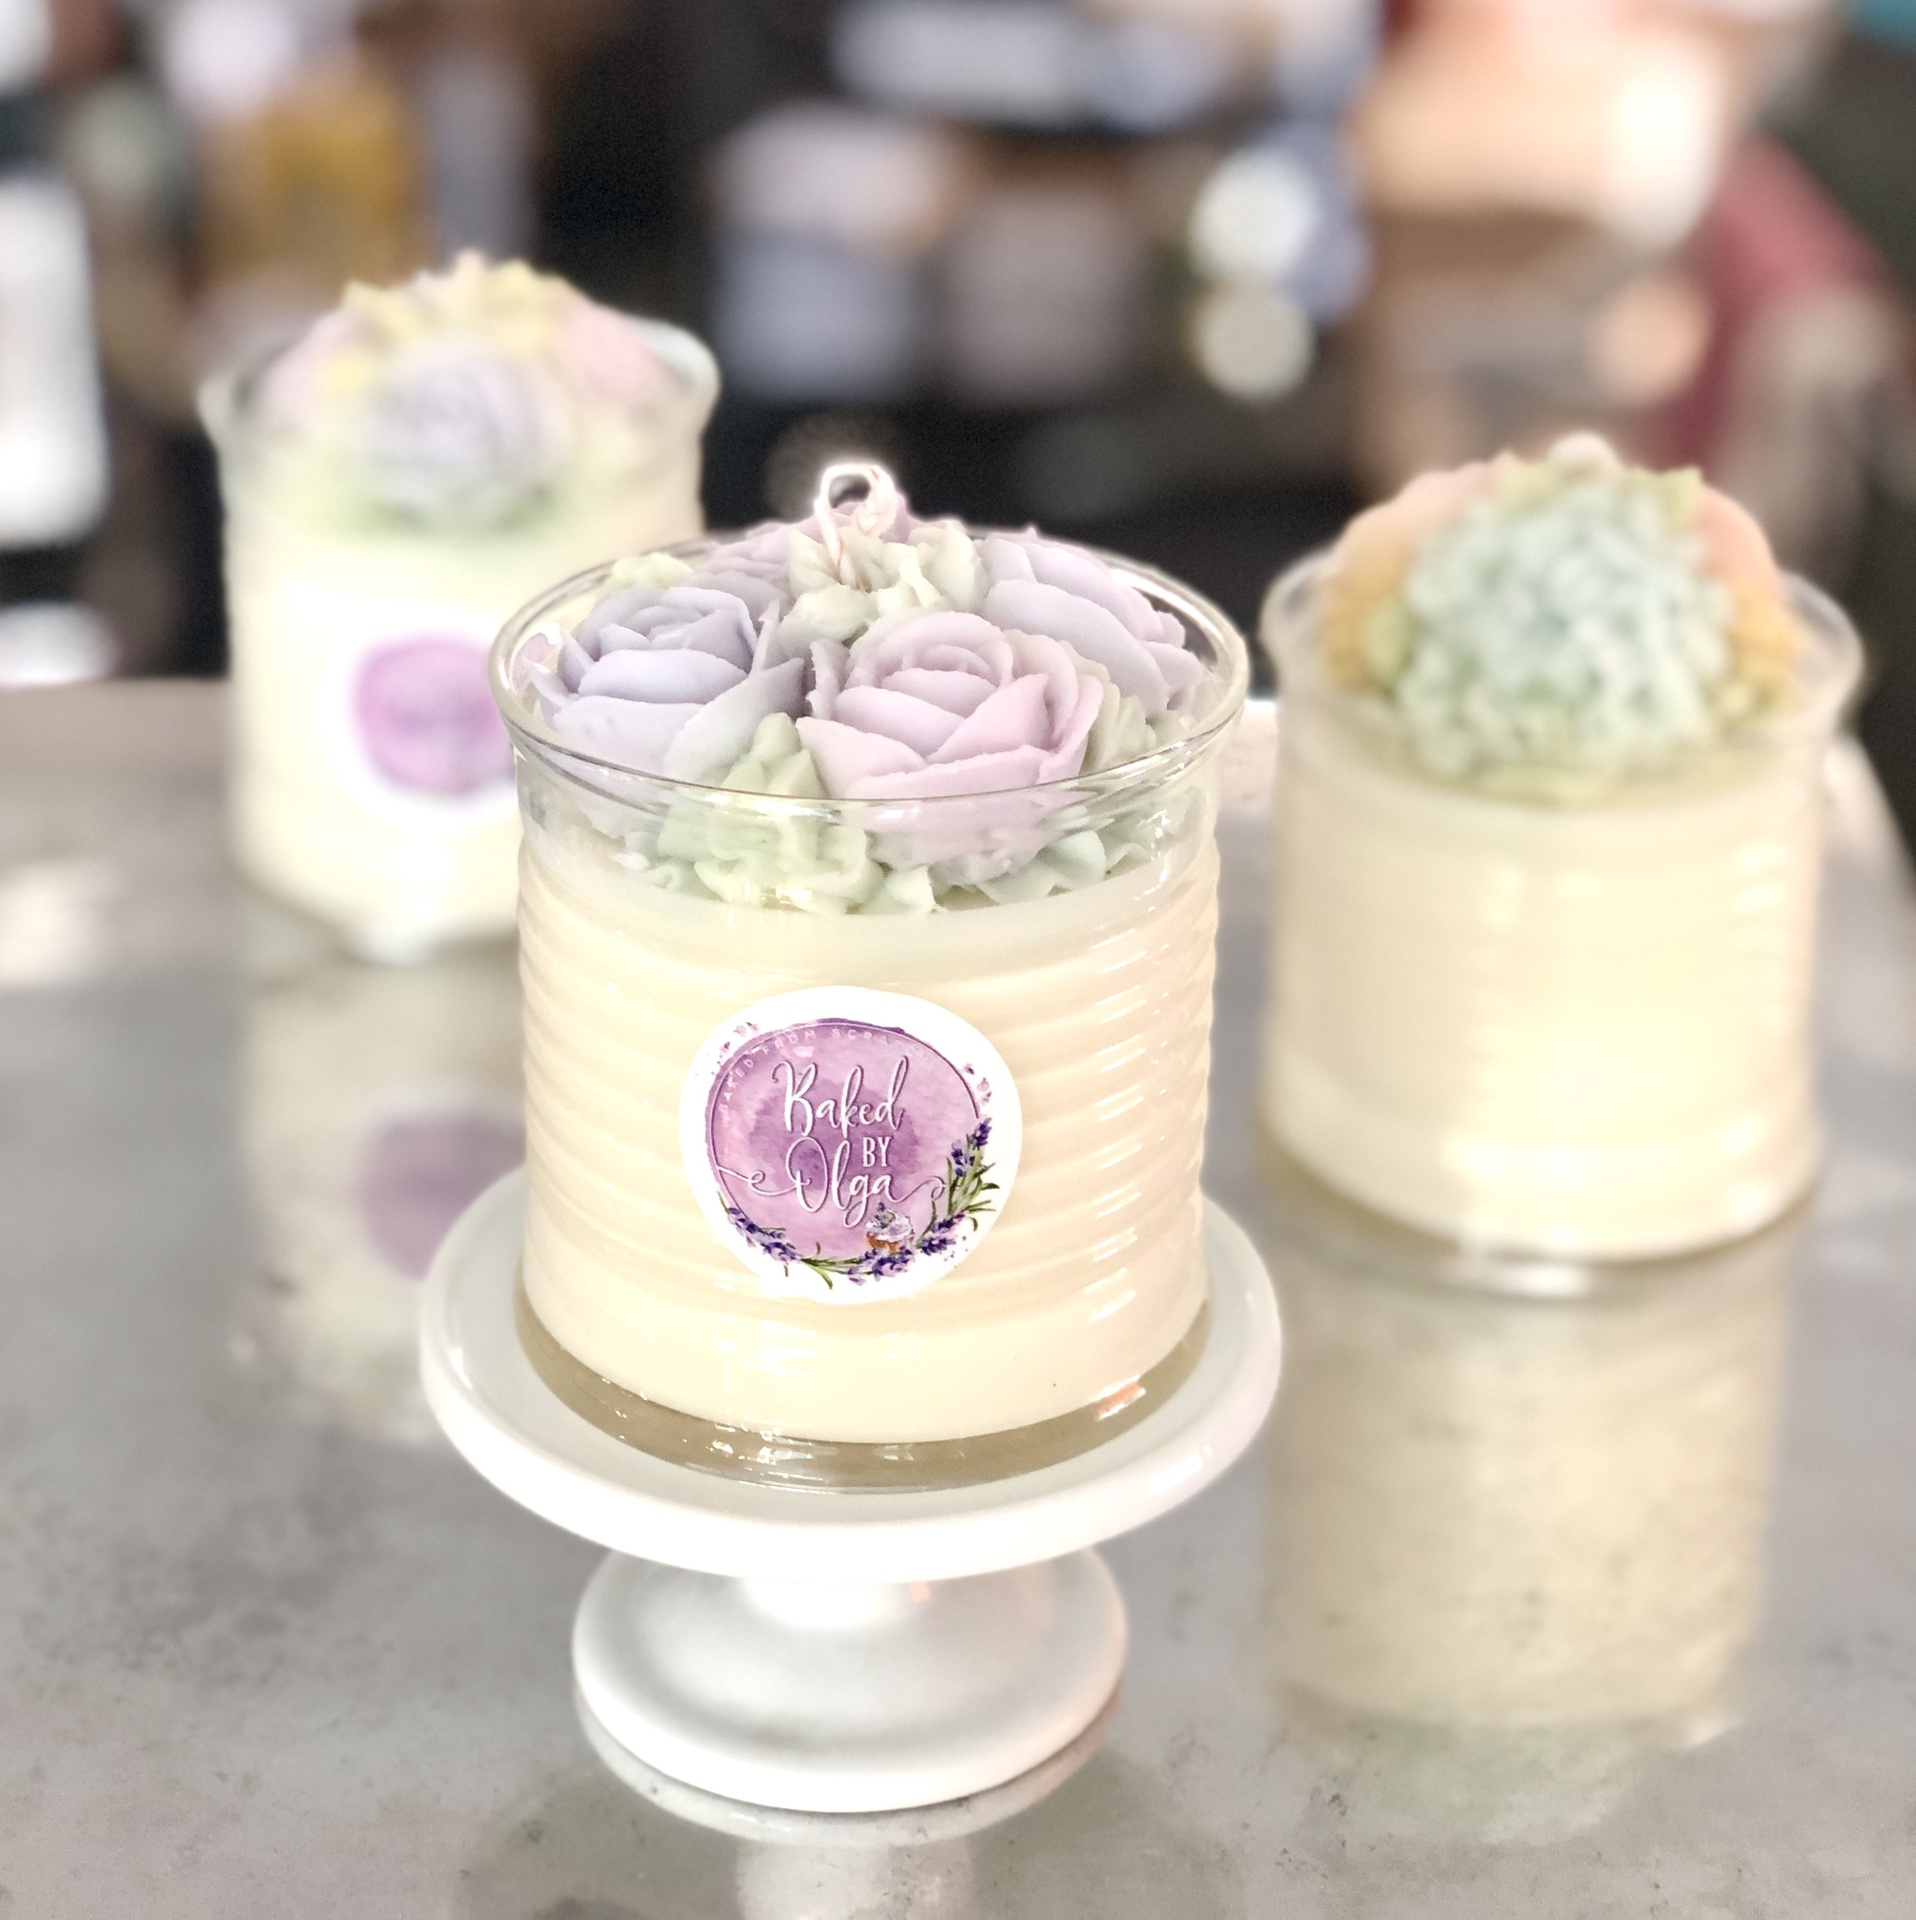 Baked by Olga Floral Candle, Boite--CHOOSE SCENT/COLOR